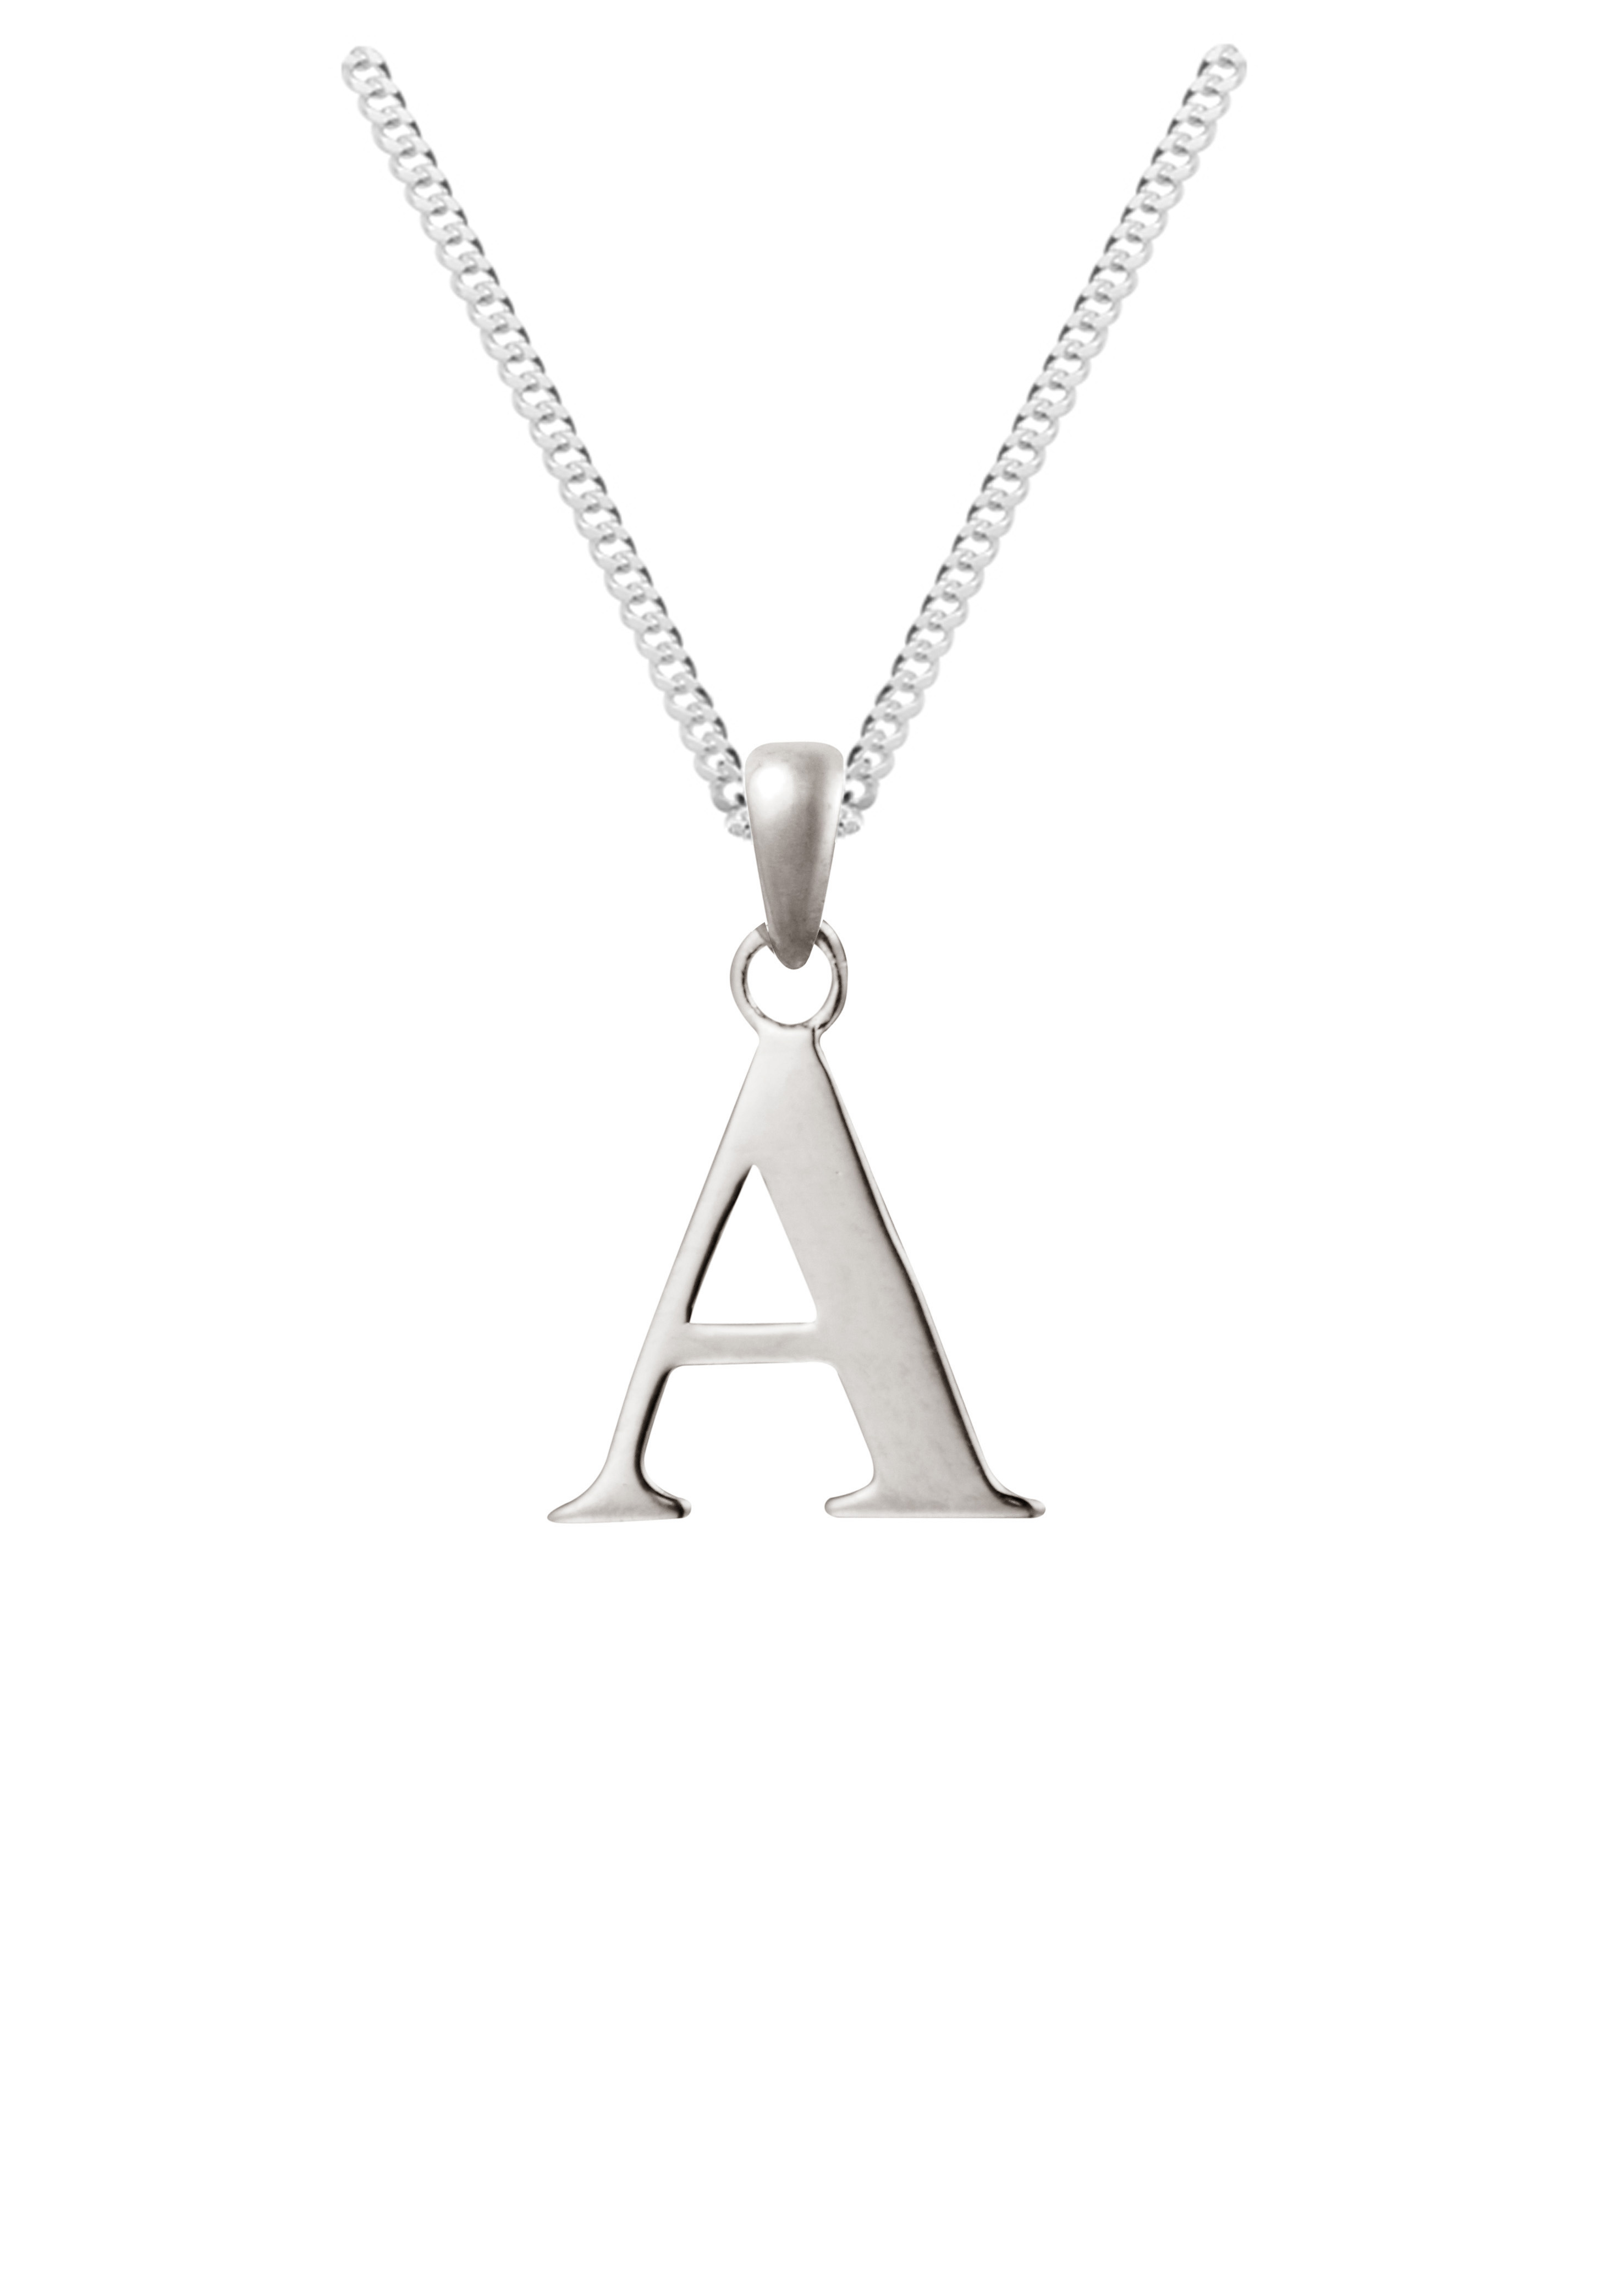 diamond affinity dancing sterling jewelry content com more qvc initial chains personalized necklace